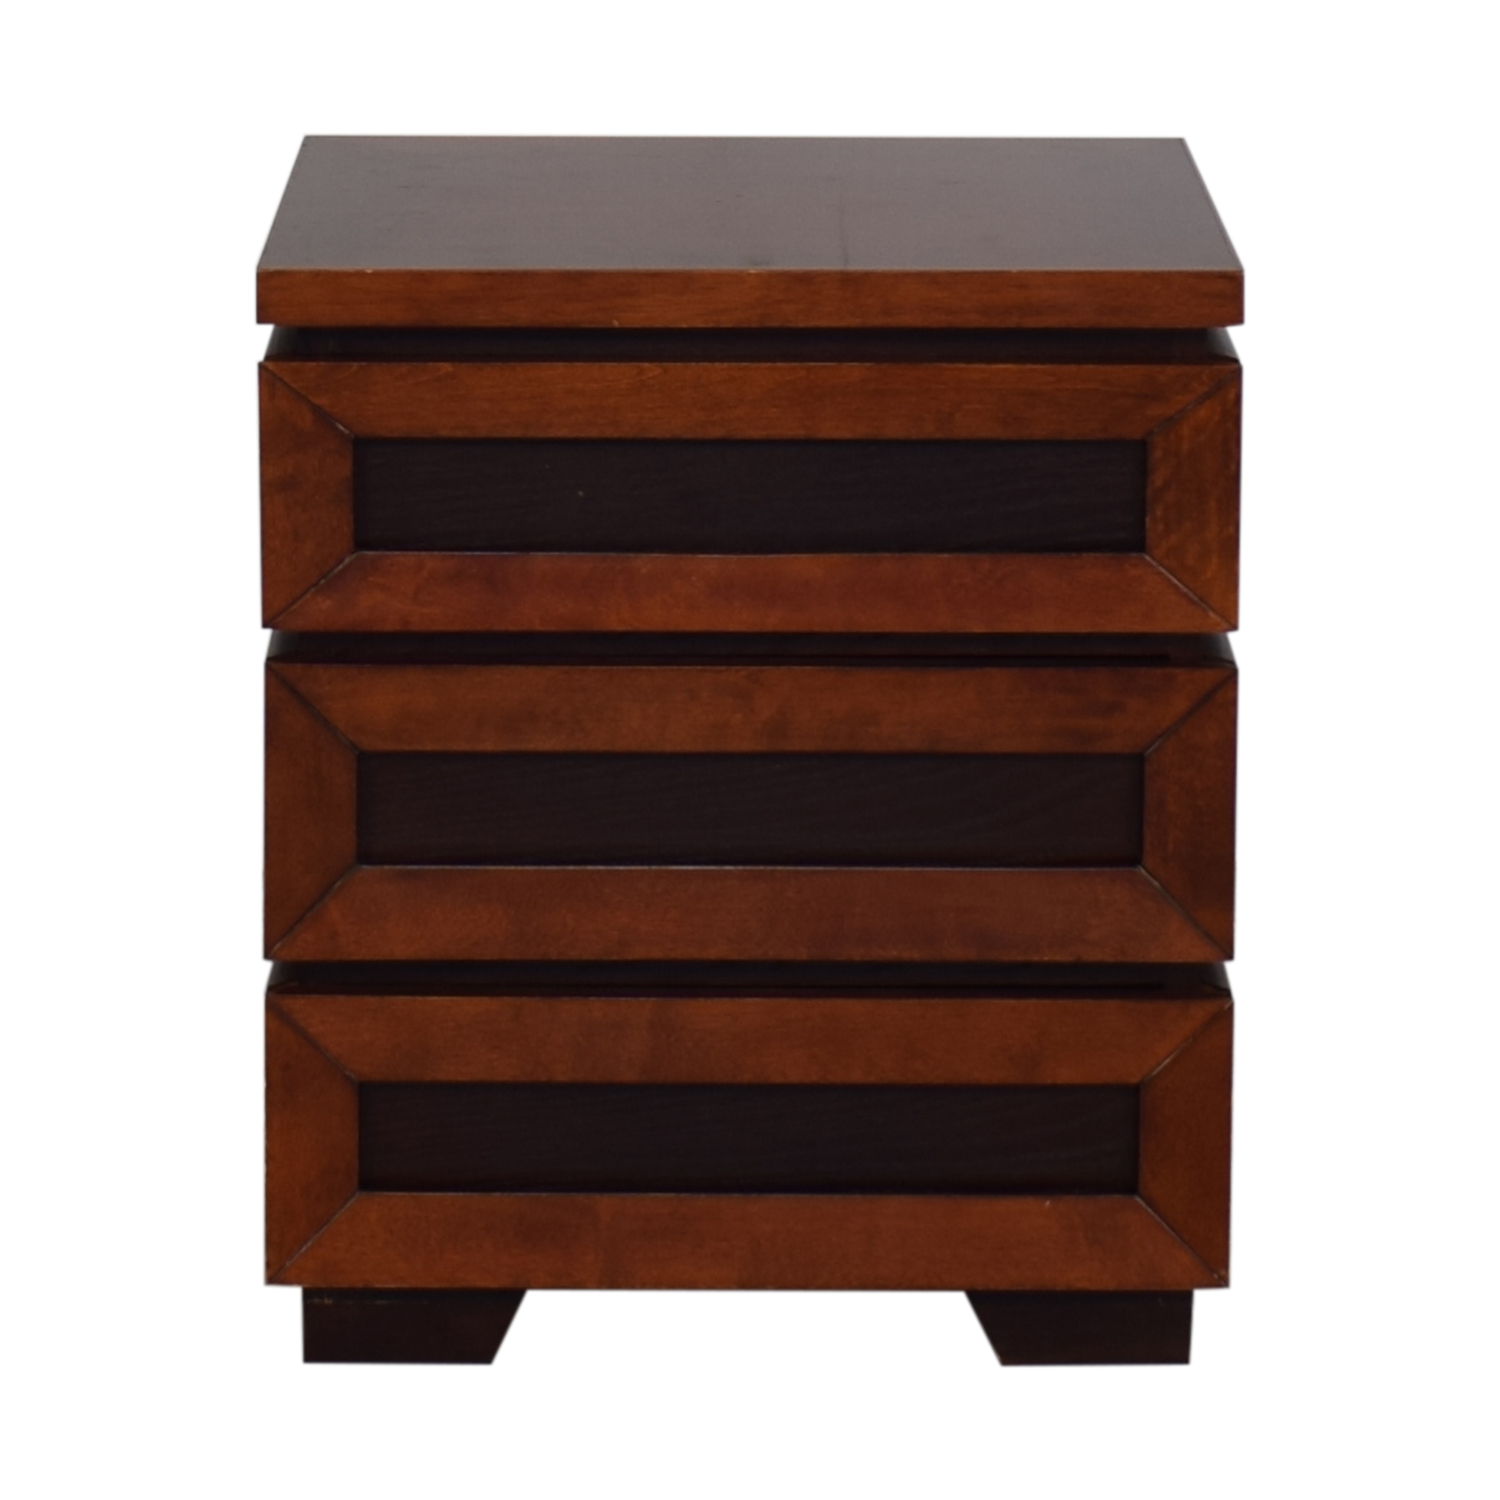 Crate & Barrel Crate & Barrel Side Table with Drawers second hand